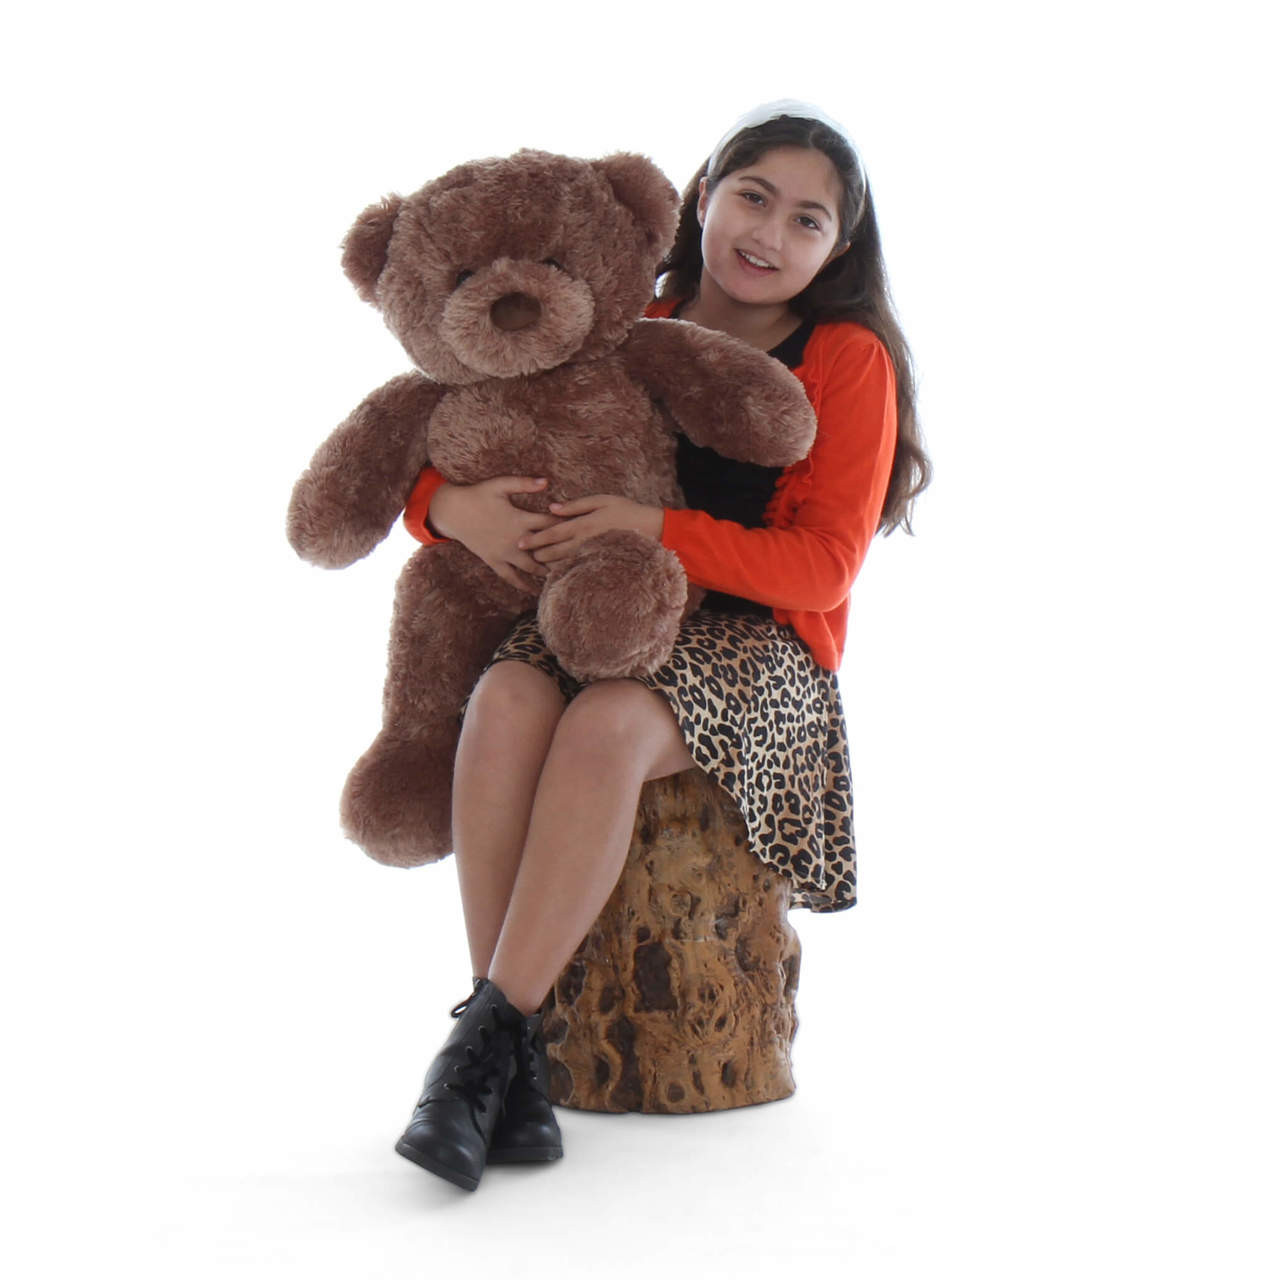 30in Mocha Teddy Bear Big Chubs